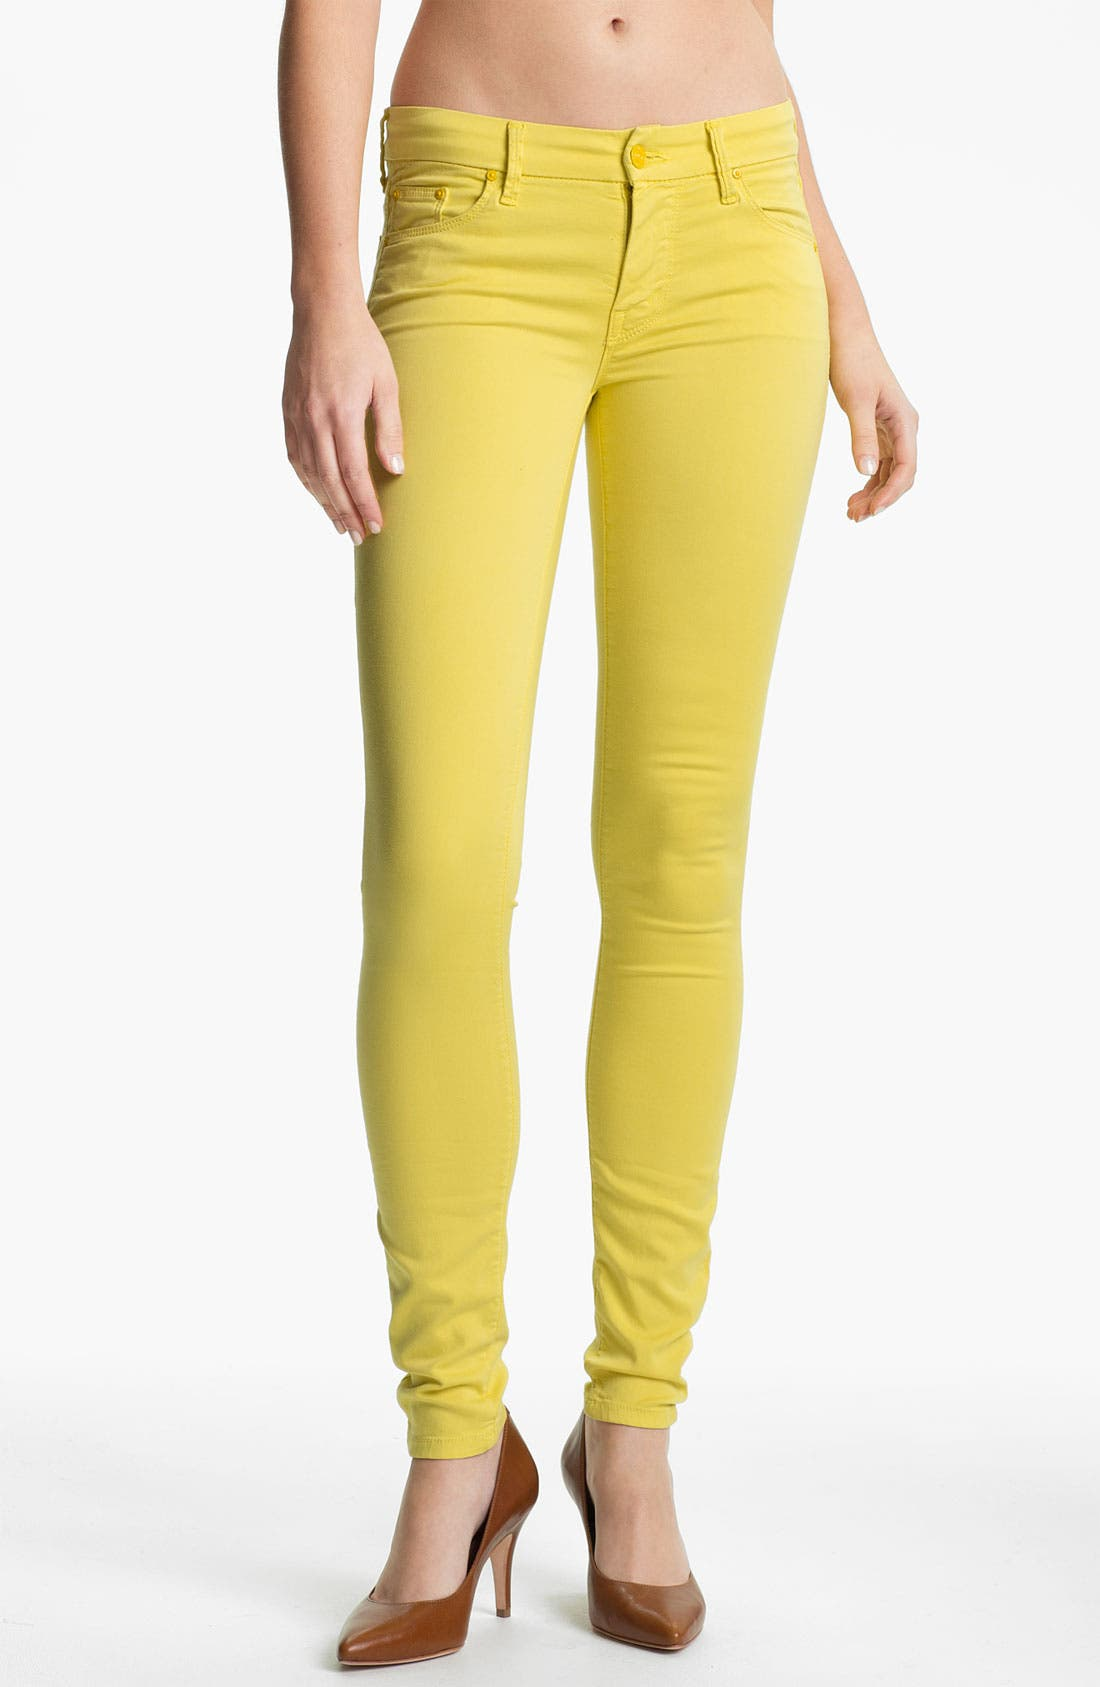 Alternate Image 1 Selected - MOTHER 'The Looker' Skinny Stretch Jeans (Starfruit)